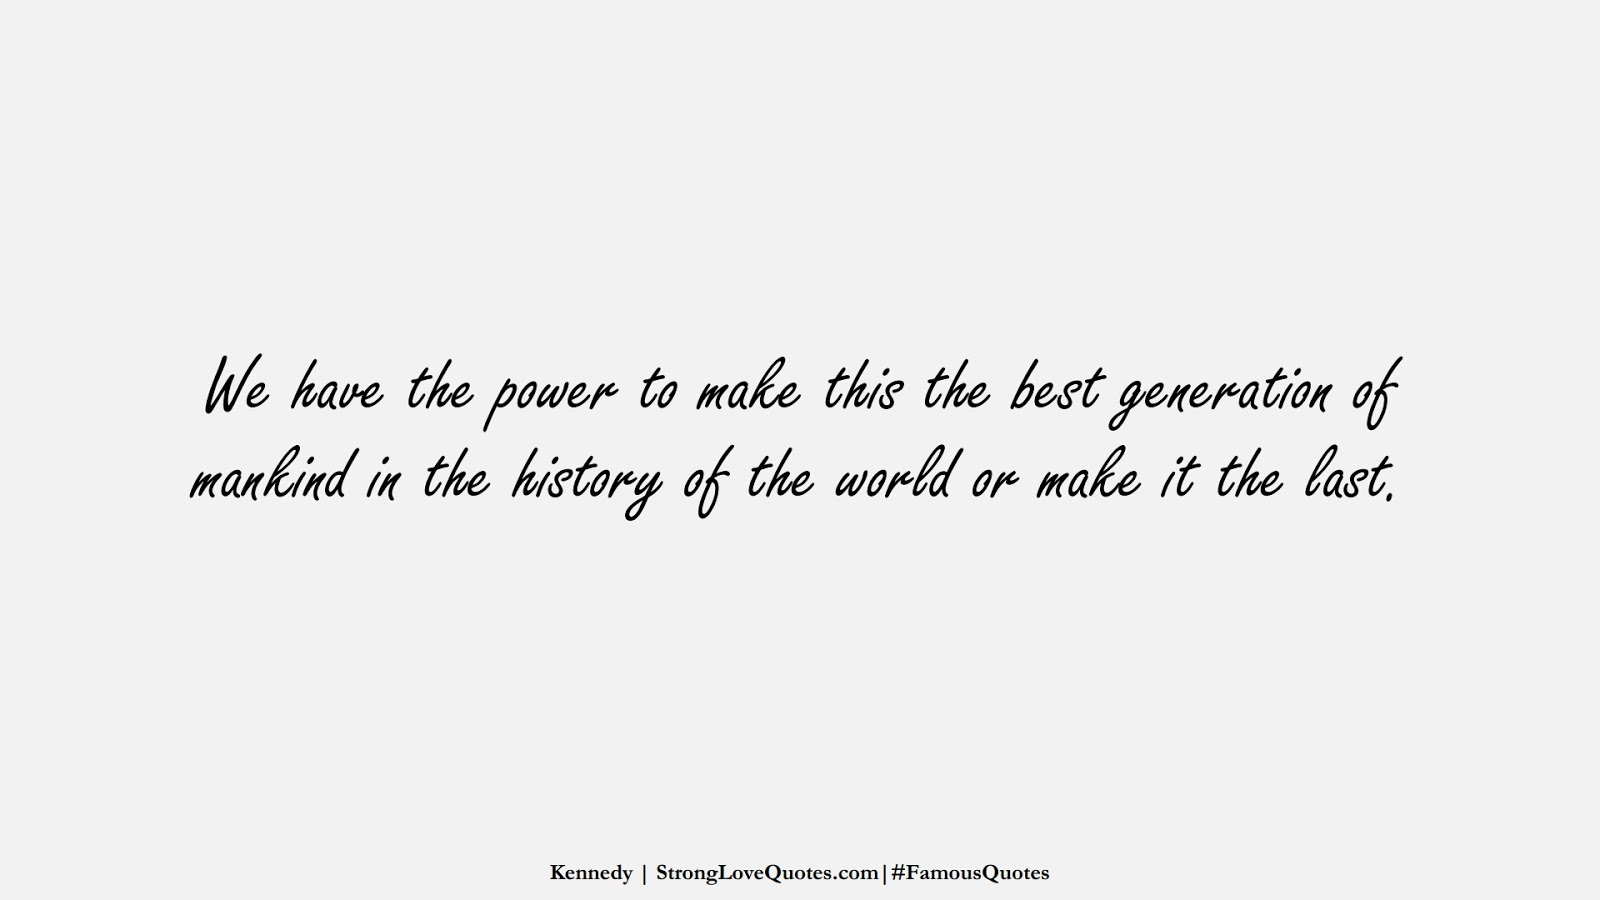 We have the power to make this the best generation of mankind in the history of the world or make it the last. (Kennedy);  #FamousQuotes